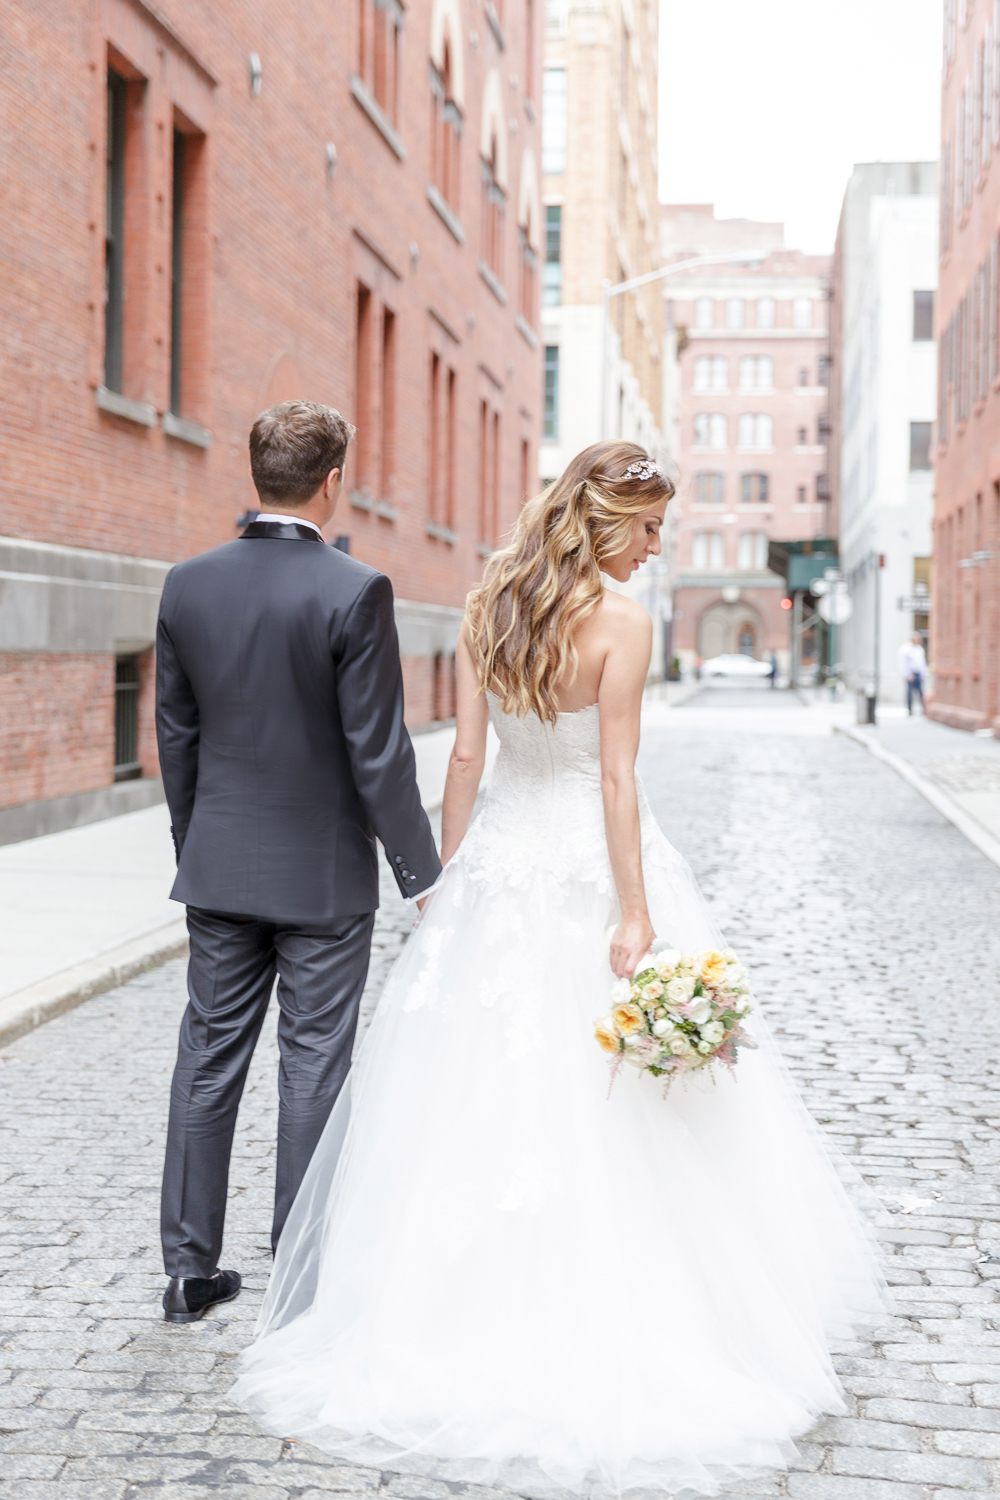 What to Look For In A Wedding Photographer Wedding Wednesday Esther Santer Fashion Blog NYC Street Style Blogger Outfit WeddingWire Beautiful Groom Bride Pretty Photography Photoshoot NYC Flowers Chuppah  Cake Suit Dress Details Stunning New York City.JPG